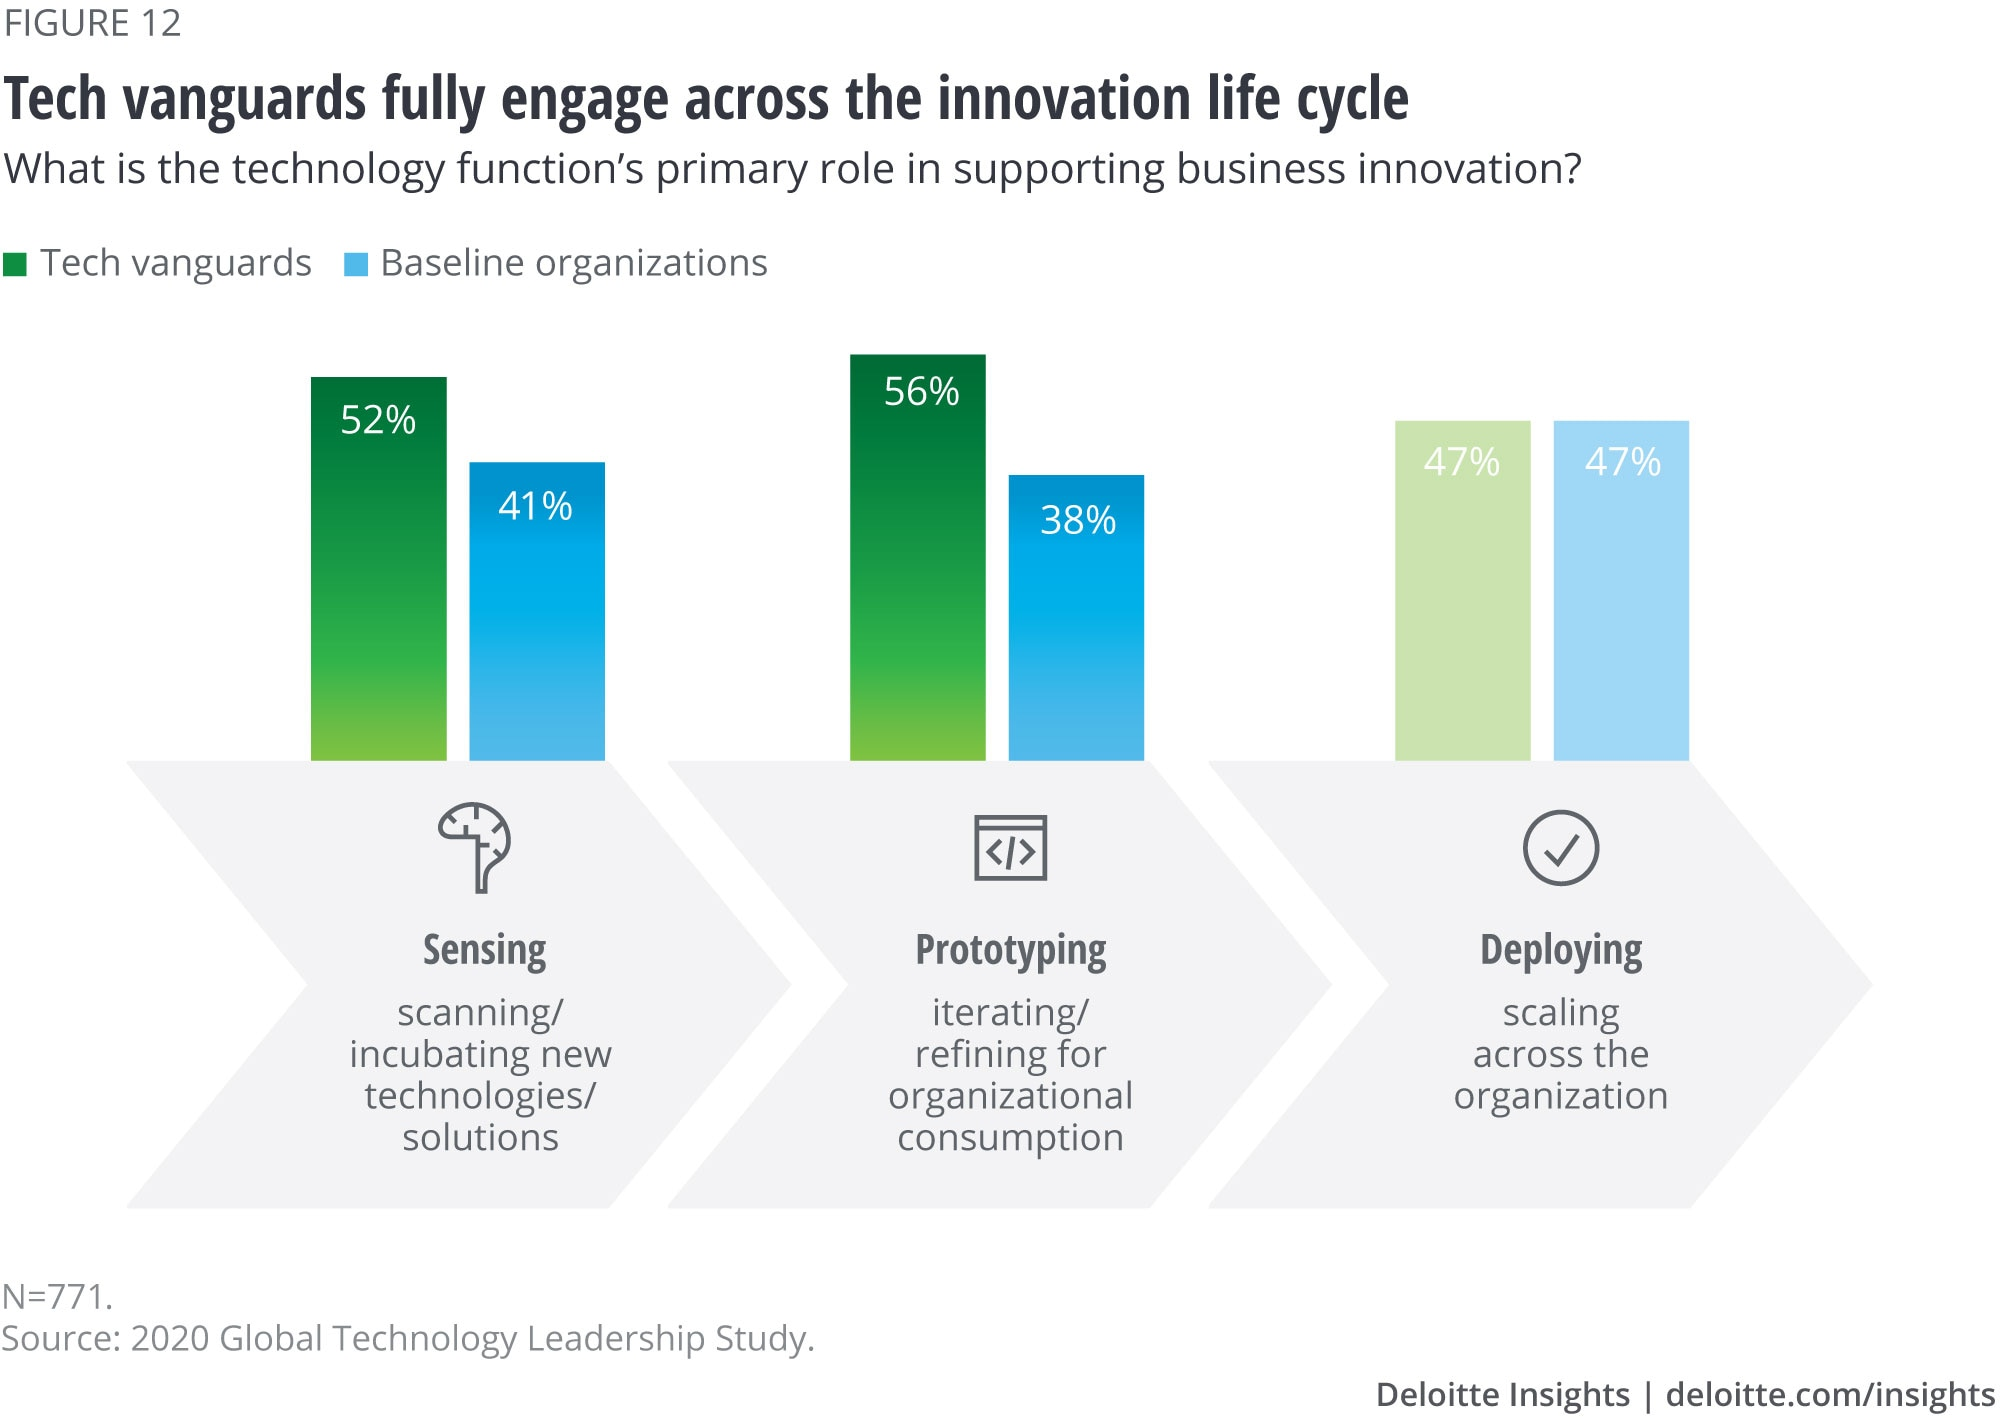 Tech vanguards fully engage across the innovation life cycle